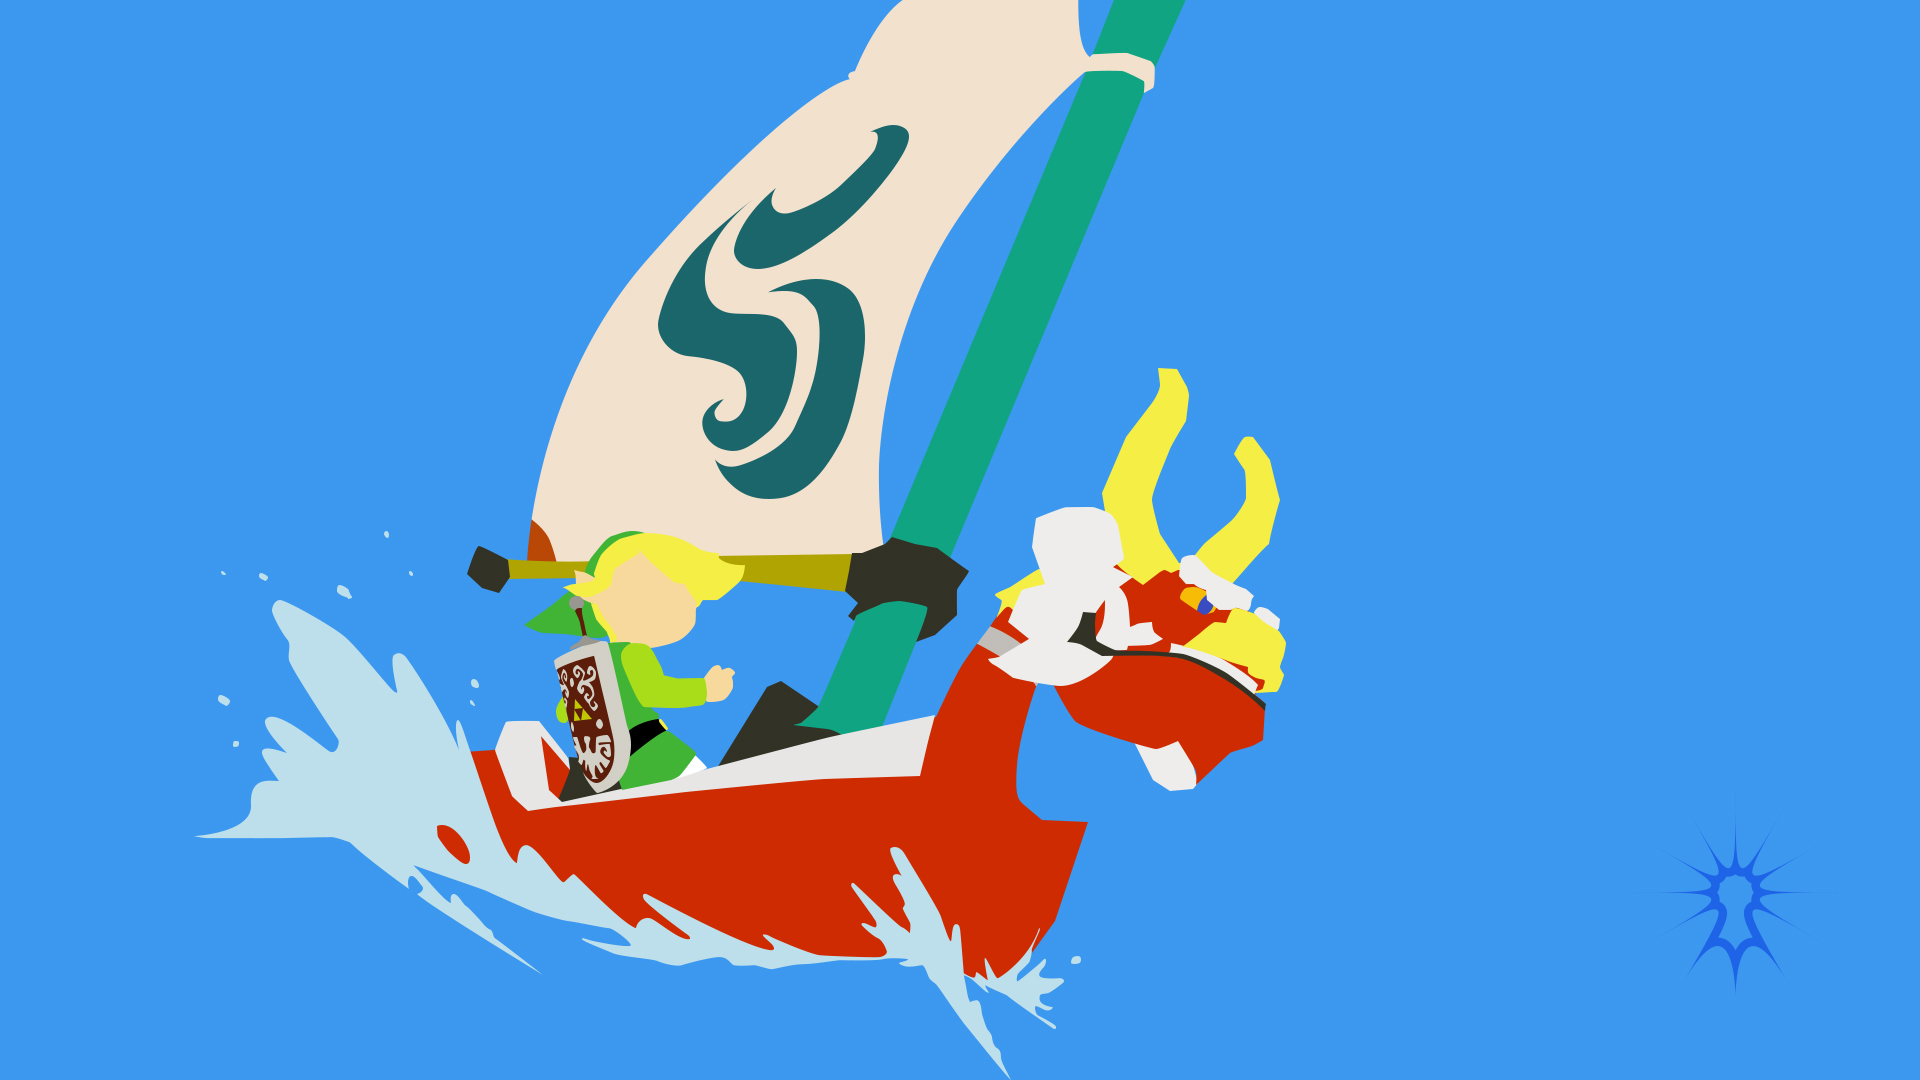 the wind waker by nateag on deviantart